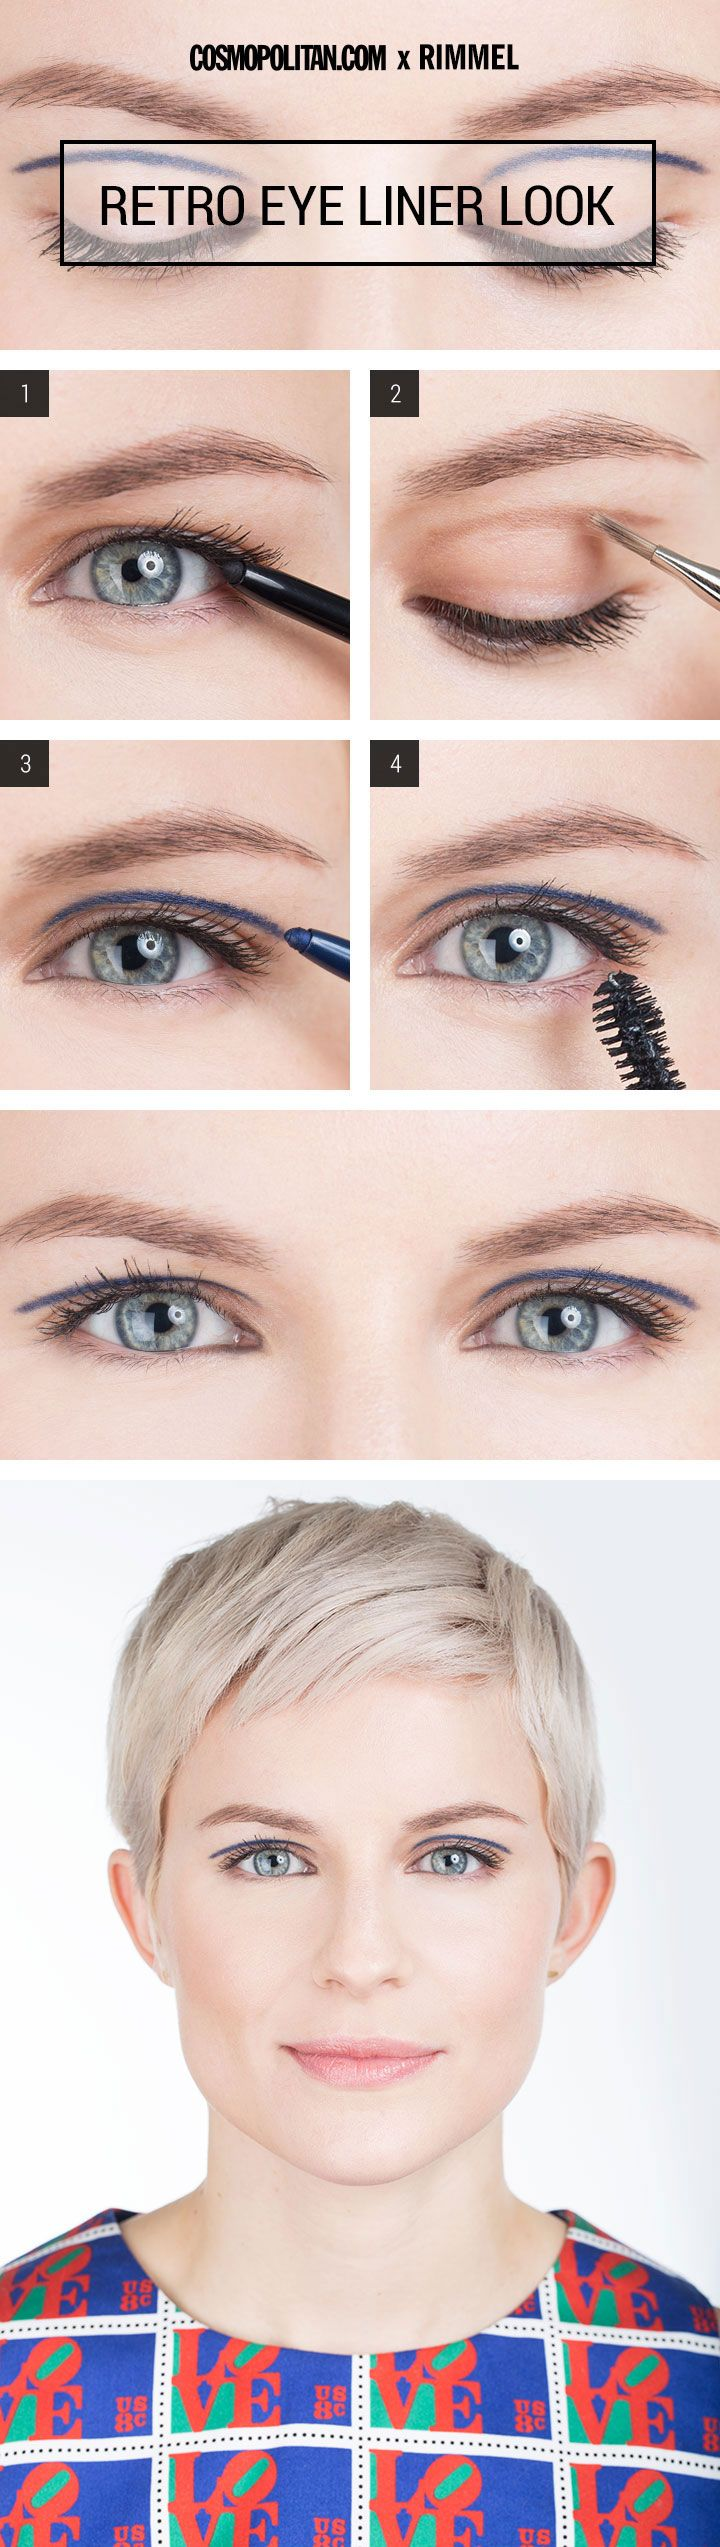 RETRO EYELINER MAKEUP TUTORIAL: Sixties icon Edie Sedgwick would totally be jealous of this super mod eye. Get this exact look with the help of this tutorial below and tips from makeup artist Sara Biria. Click through for the easy eye makeup and eyeliner tutorial that's perfect if you want a beauty look with a little edge.